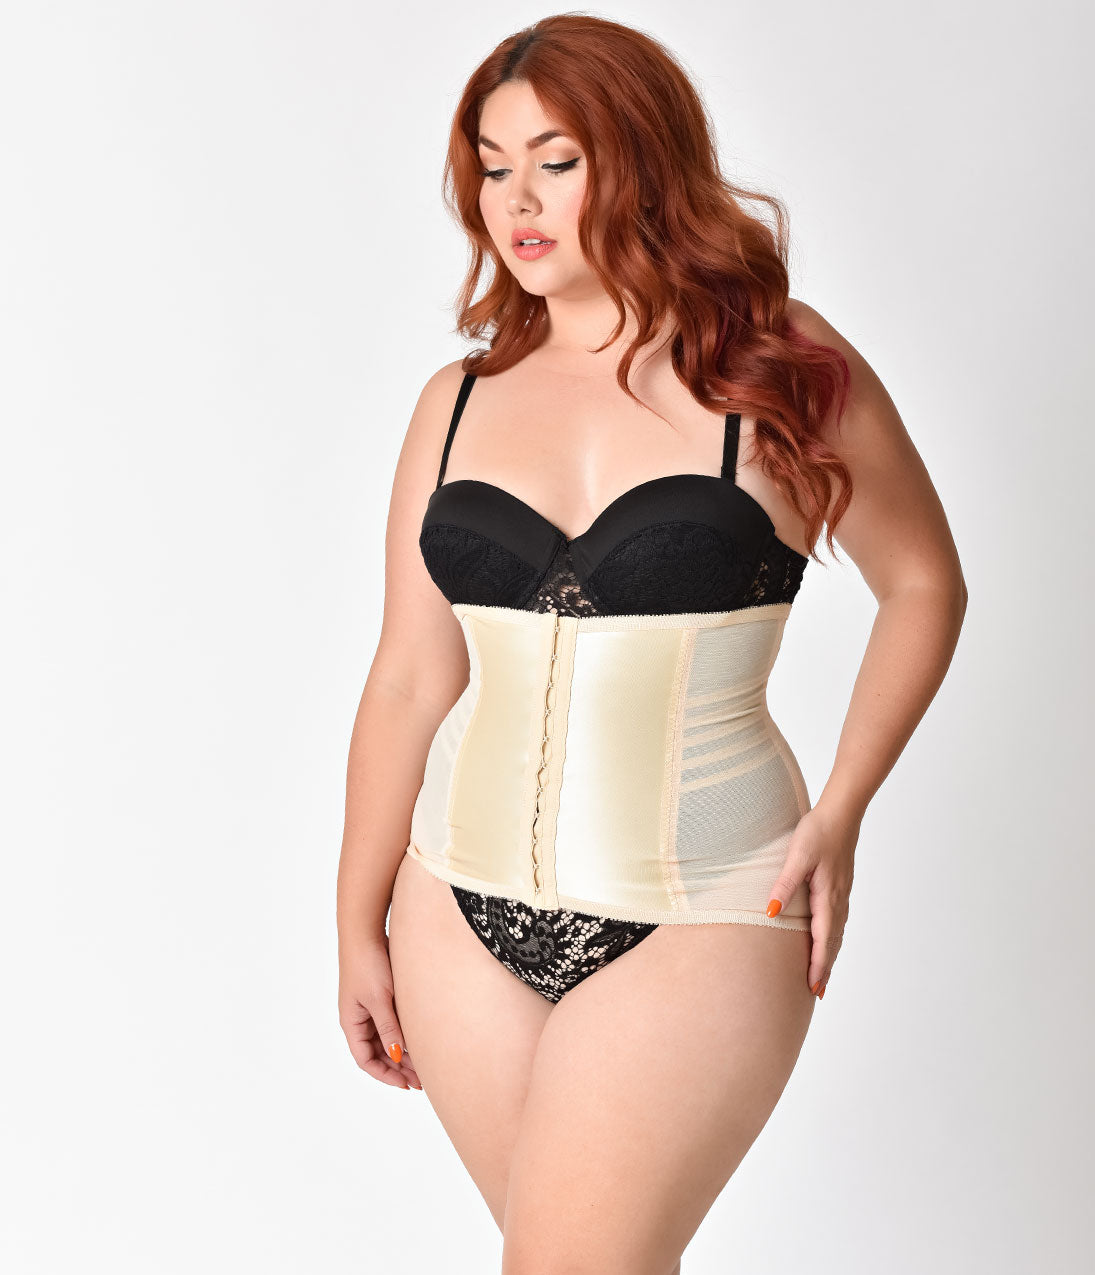 Retro Lingerie, Vintage Lingerie, New 1950s,1960s, 1970s Beige Plus Size Stretch Waist Cincher $44.00 AT vintagedancer.com